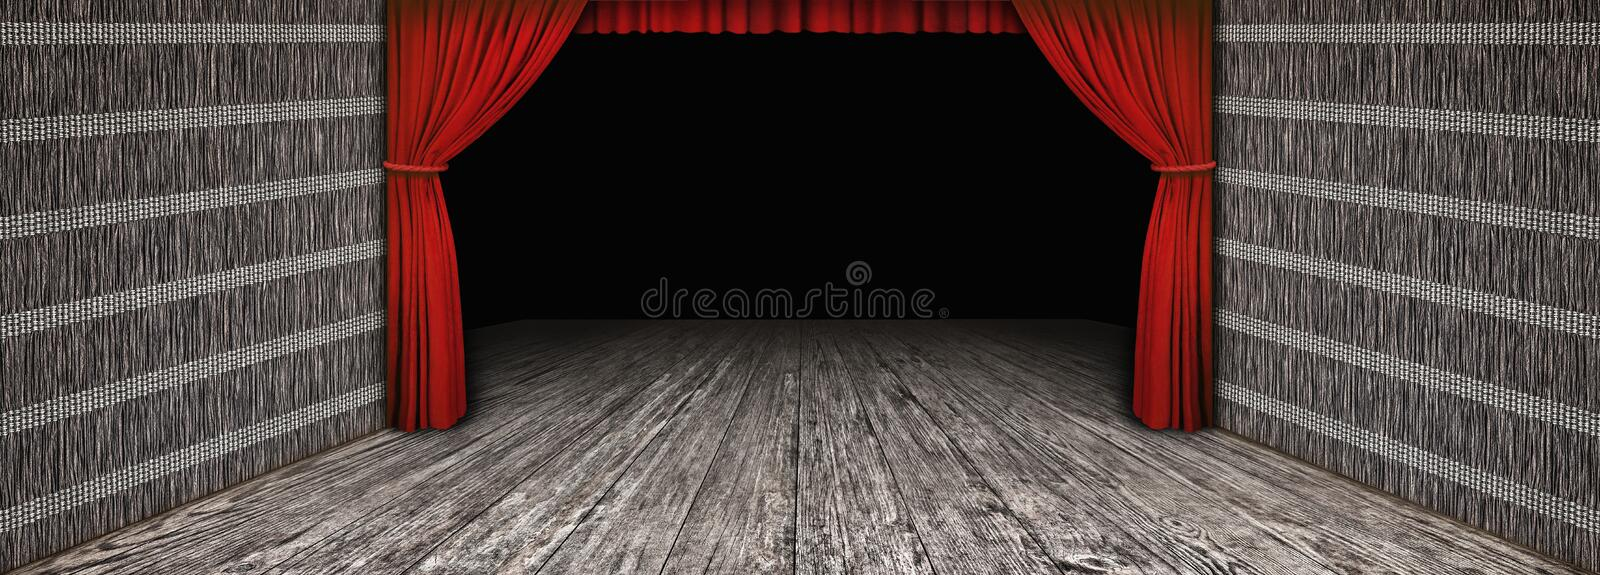 High resolution rustic wooden theater scenery with side folded red curtain and darkened empty stage.  vector illustration